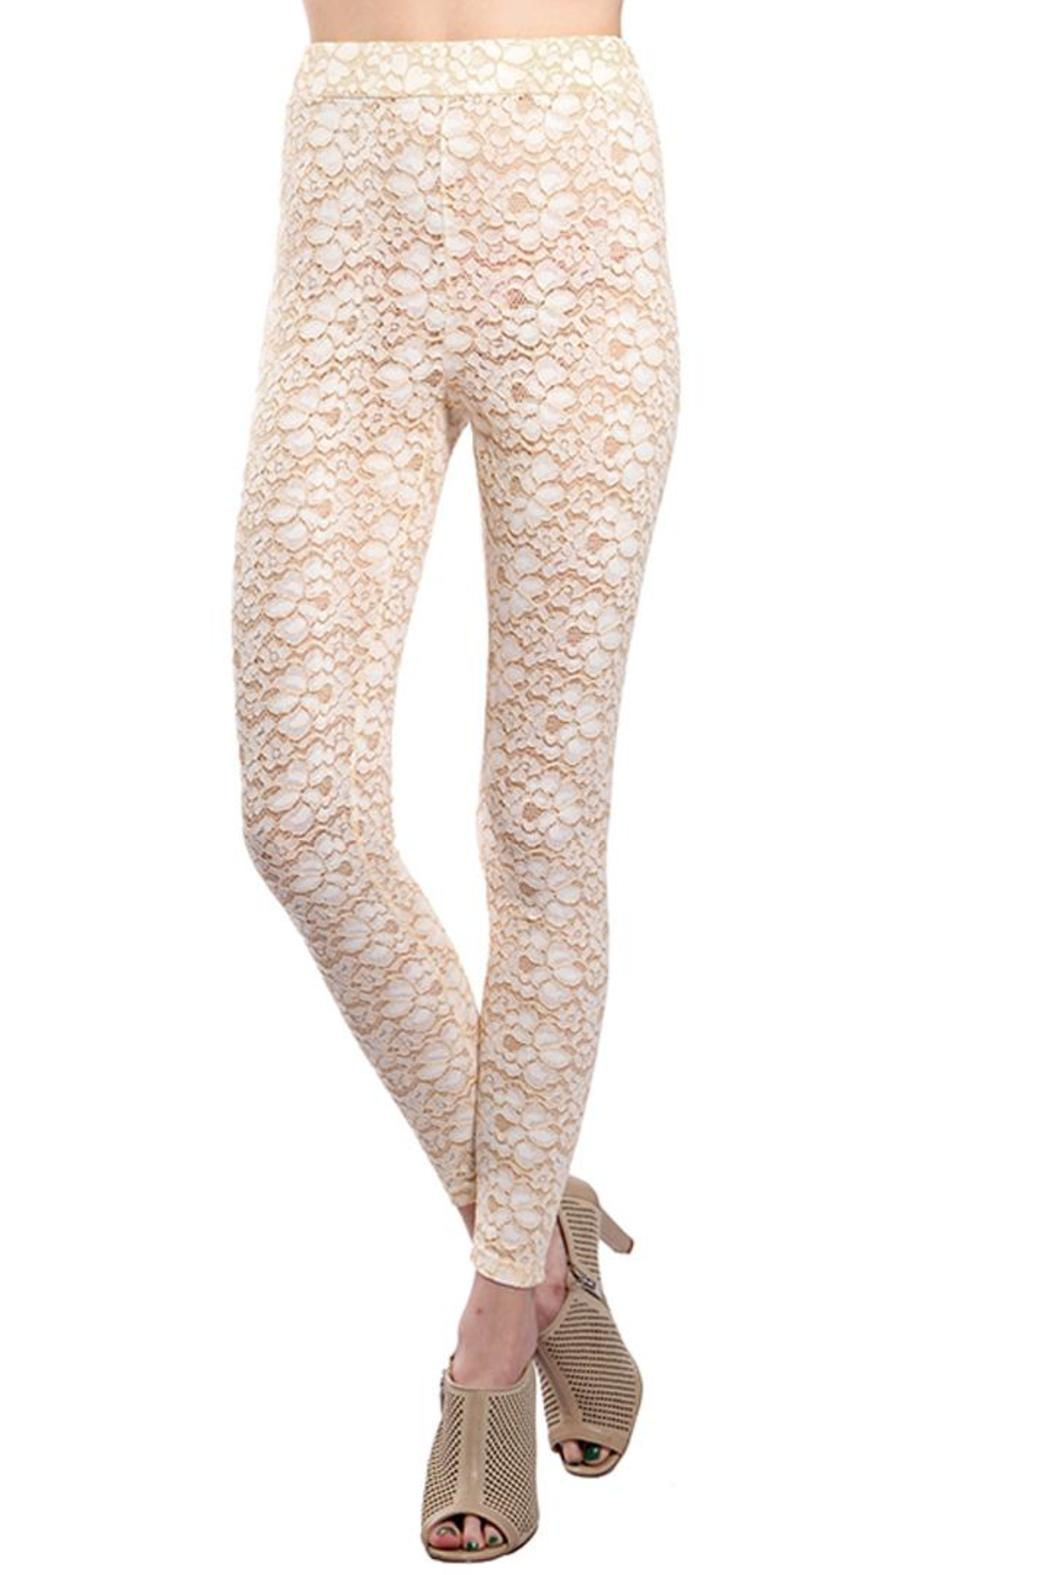 0ee55b678b2e8 Ryu  Lace Leggings from Colorado by Daisy in a Bottle — Shoptiques